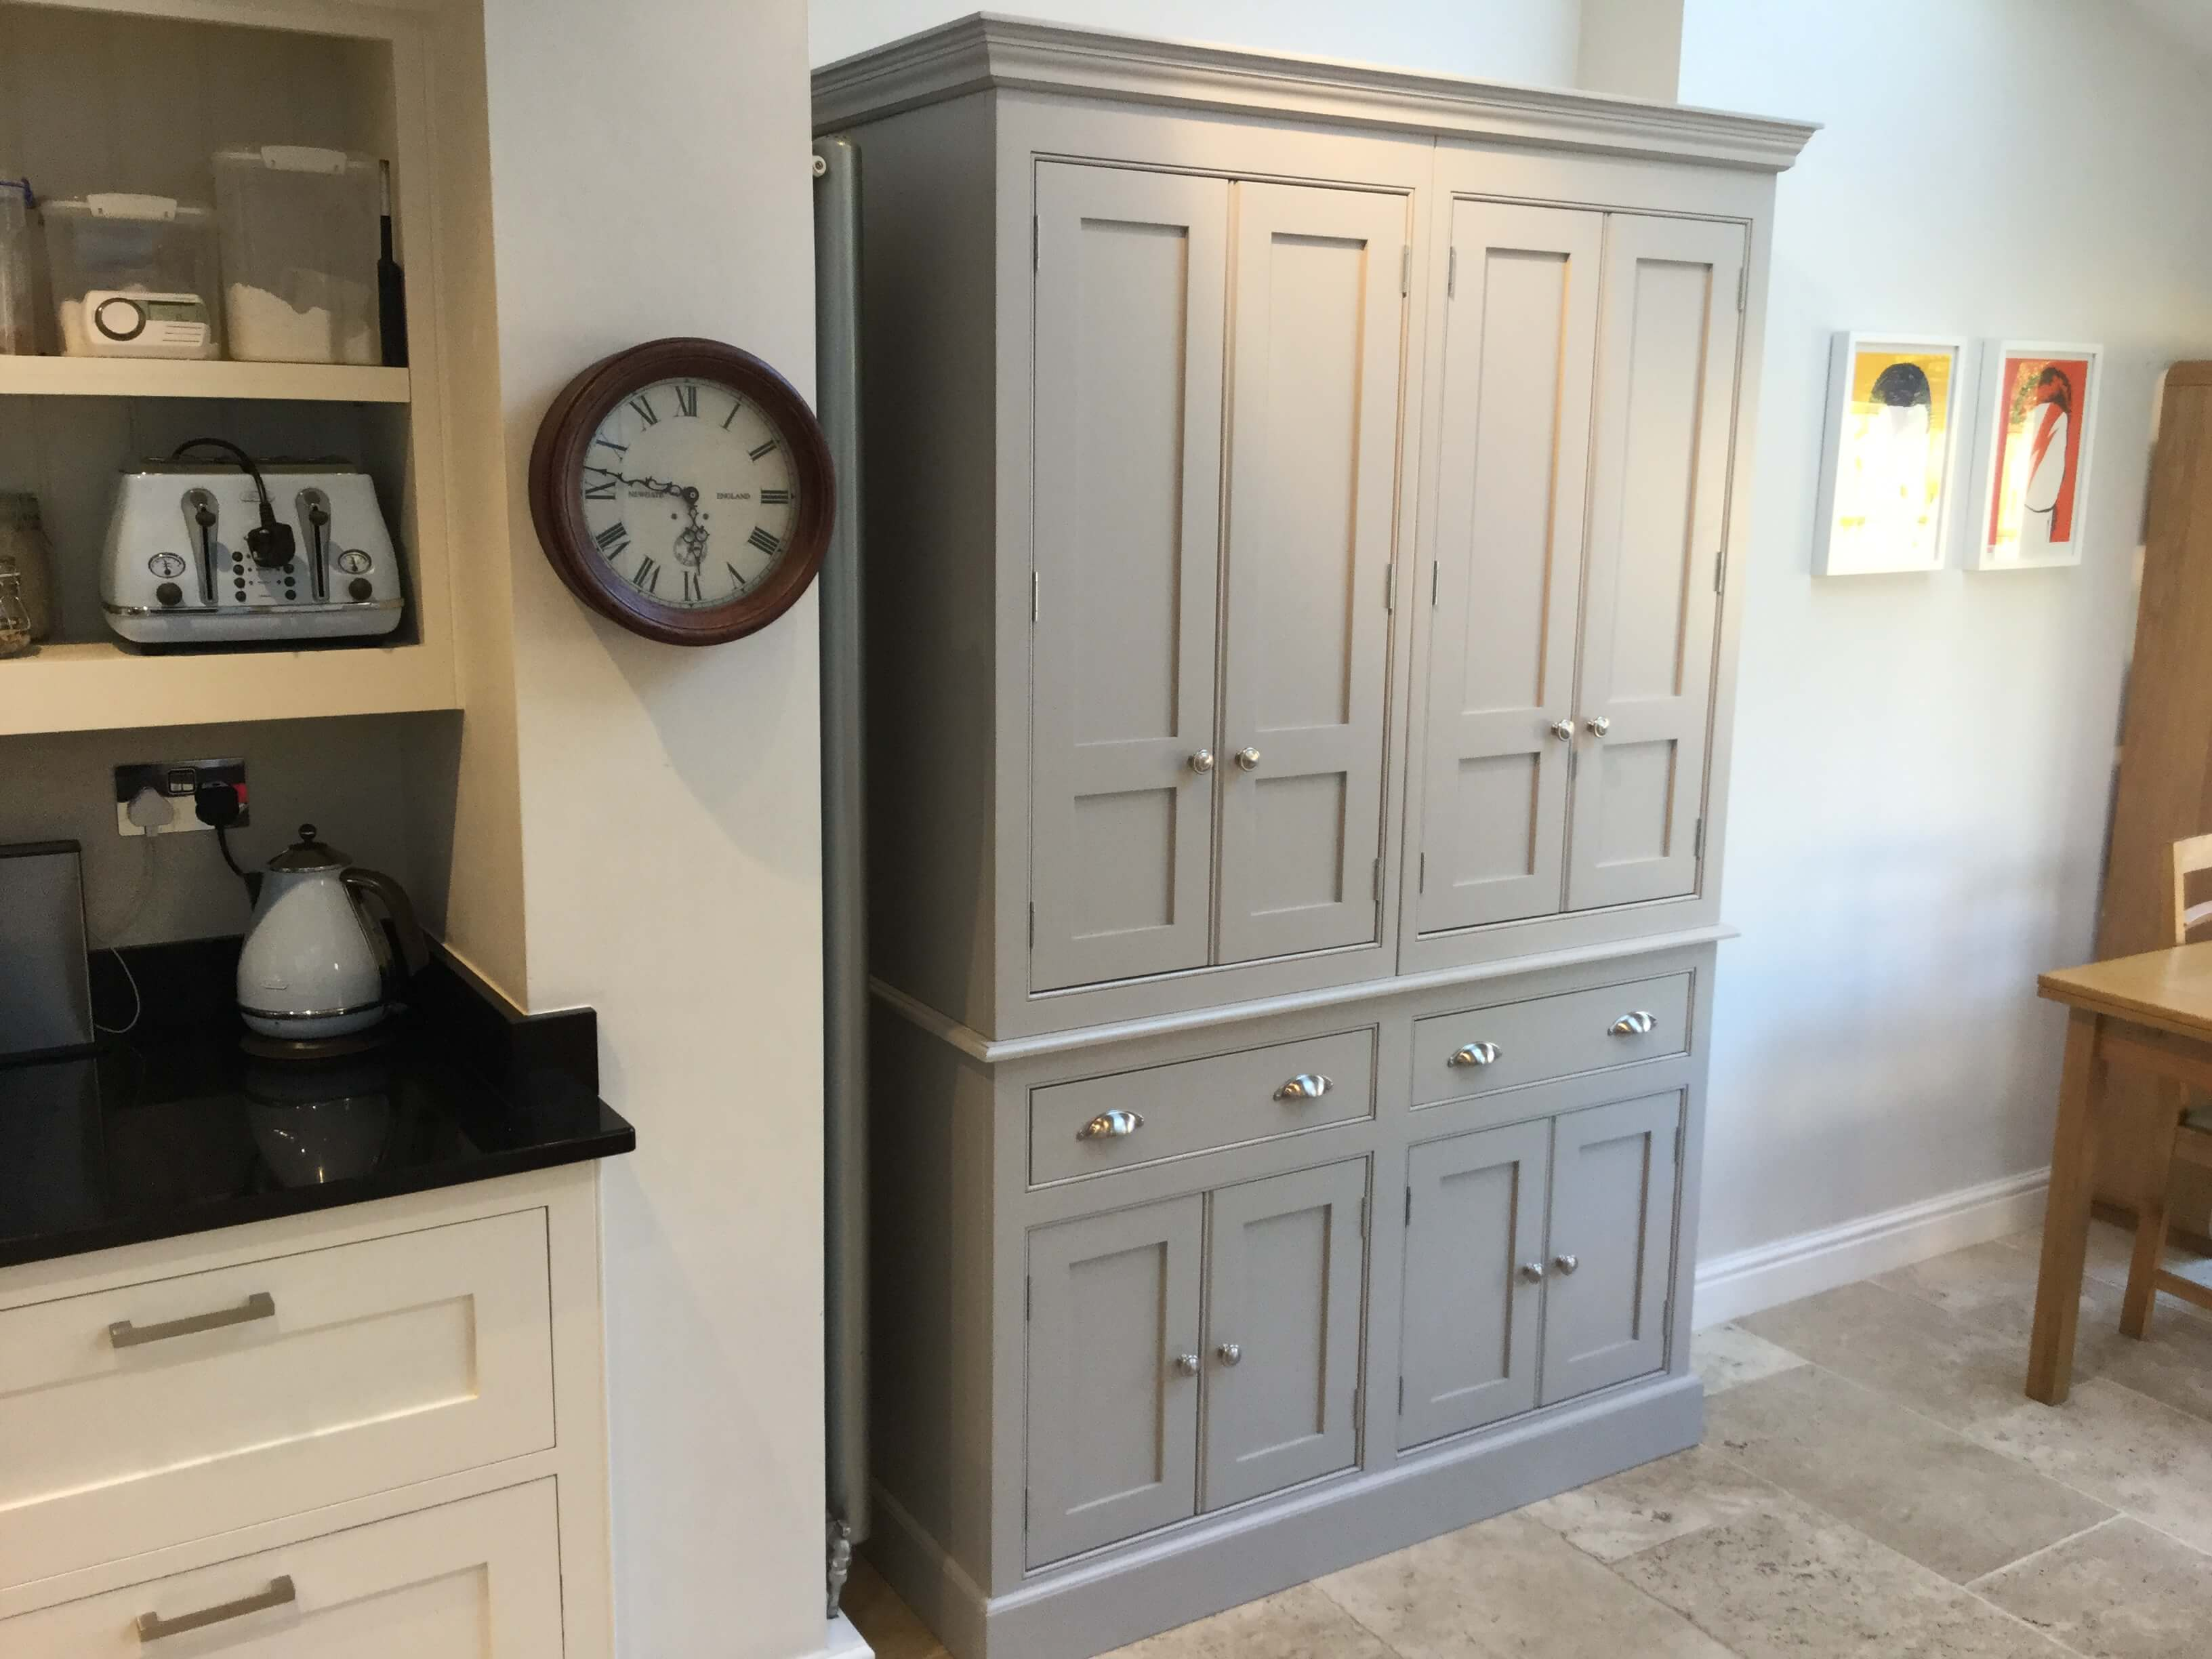 Larder, Bespoke Larder, Elegant Bespoke Living, Farrow & Ball paint, Leamington Spa, Kitchen Larder, Joinery, Carpentry, Kitchen furniture